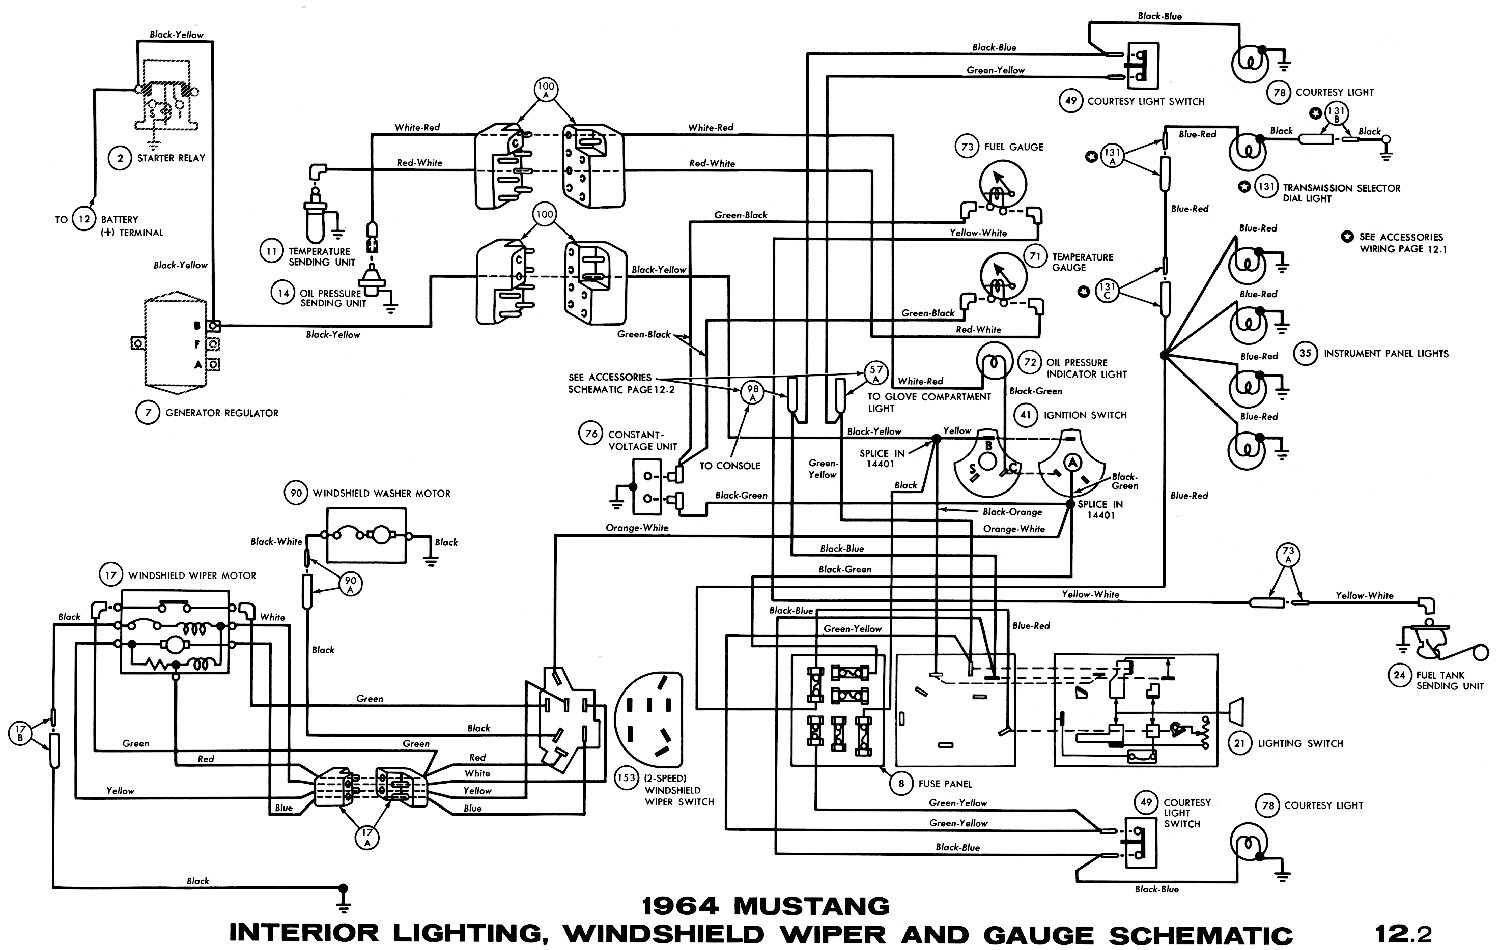 hight resolution of 1966 mustang ke line diagram wiring schematic trusted wiring diagram complete wiring diagram 1966 mustang 1966 mustang courtesy light wiring diagram